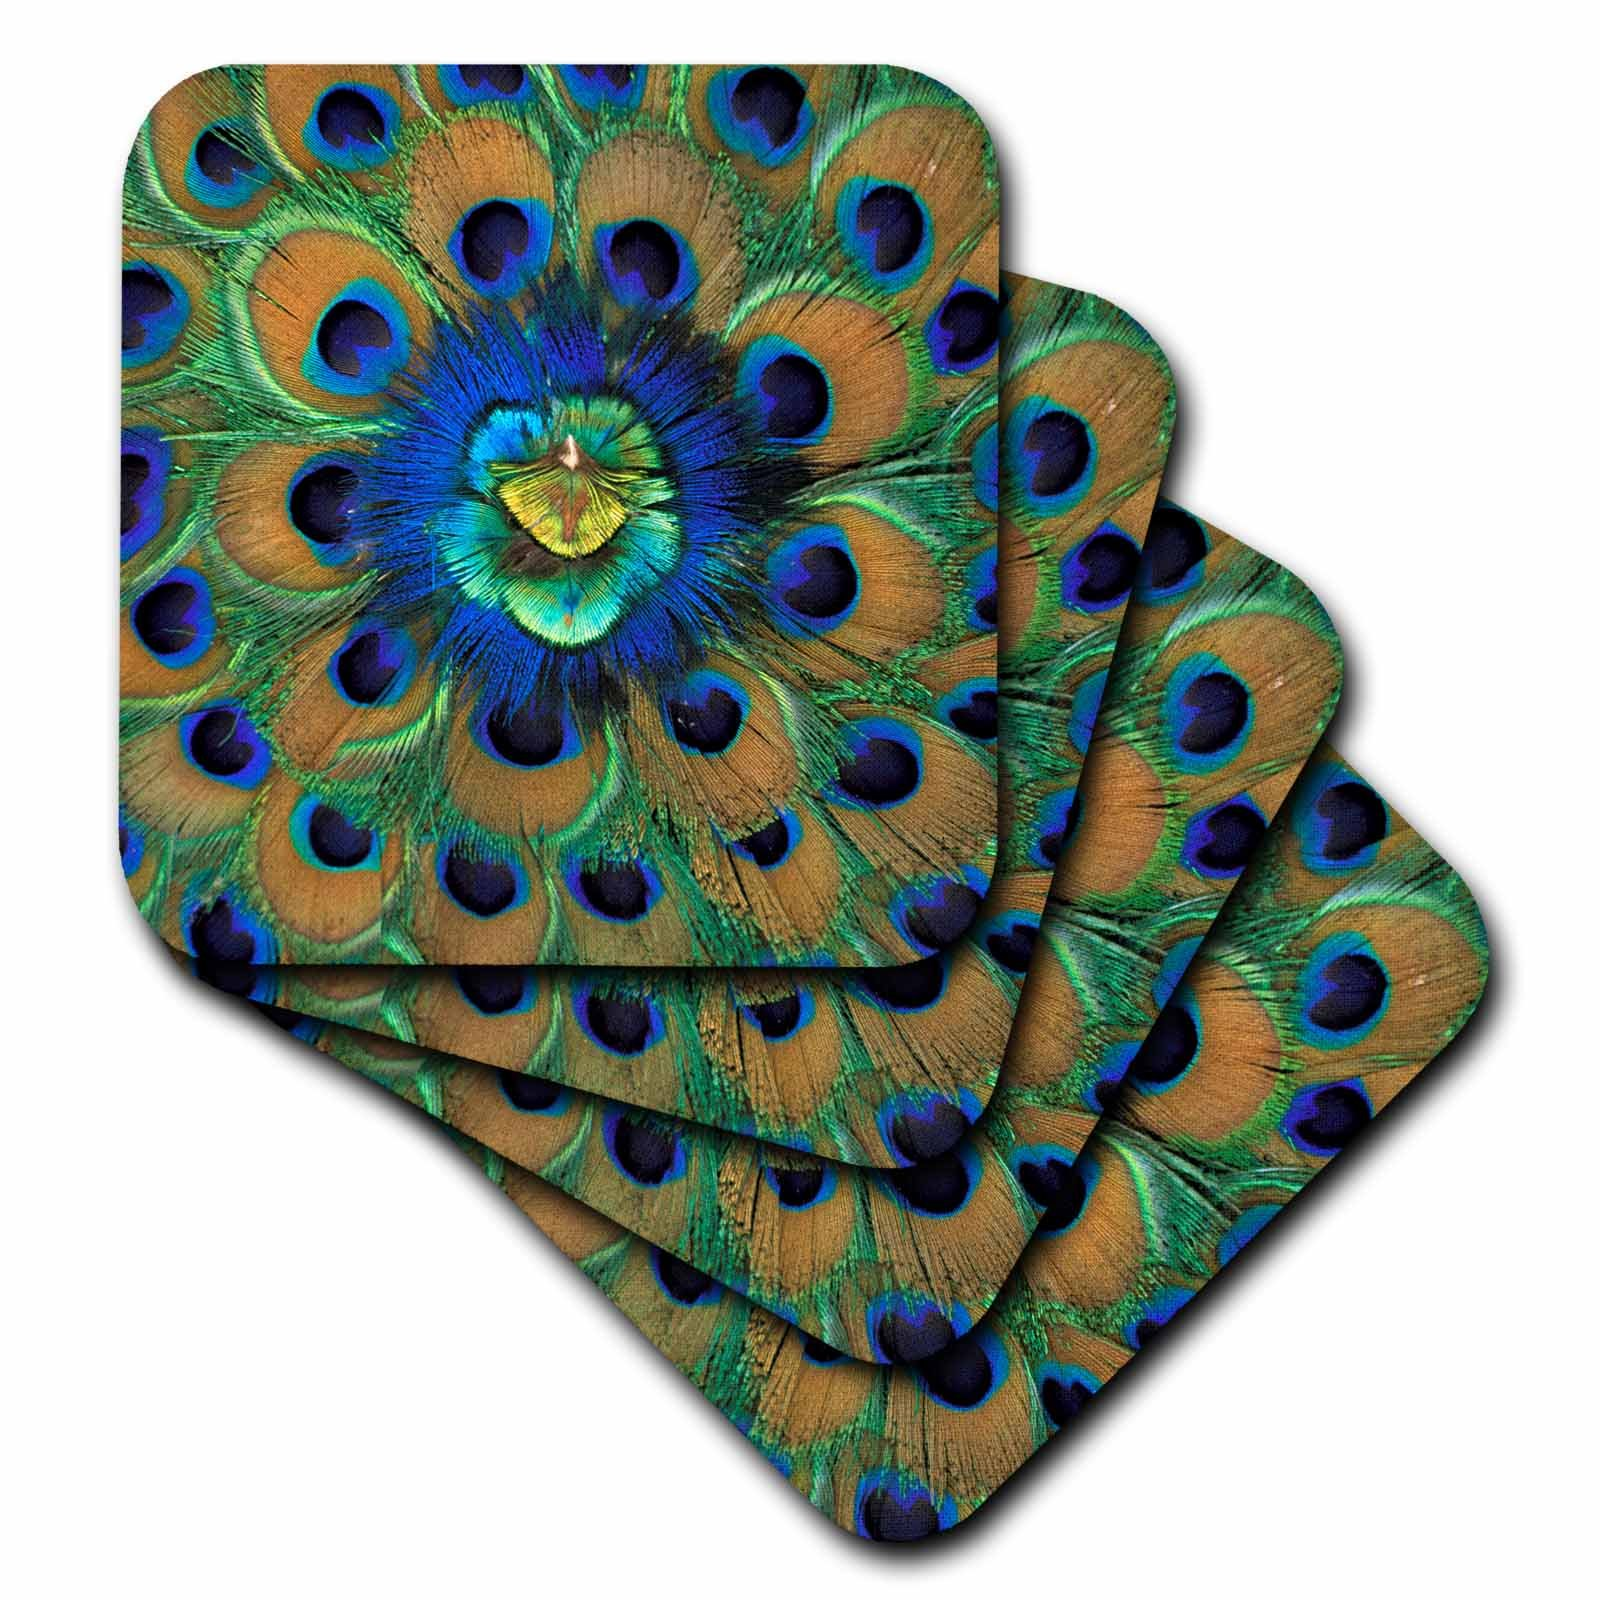 3dRose cst_73909_2 Natural Peacock Feather Patterns, India-AS10 DFR0096-David R. Frazier-Soft Coasters, Set of 8